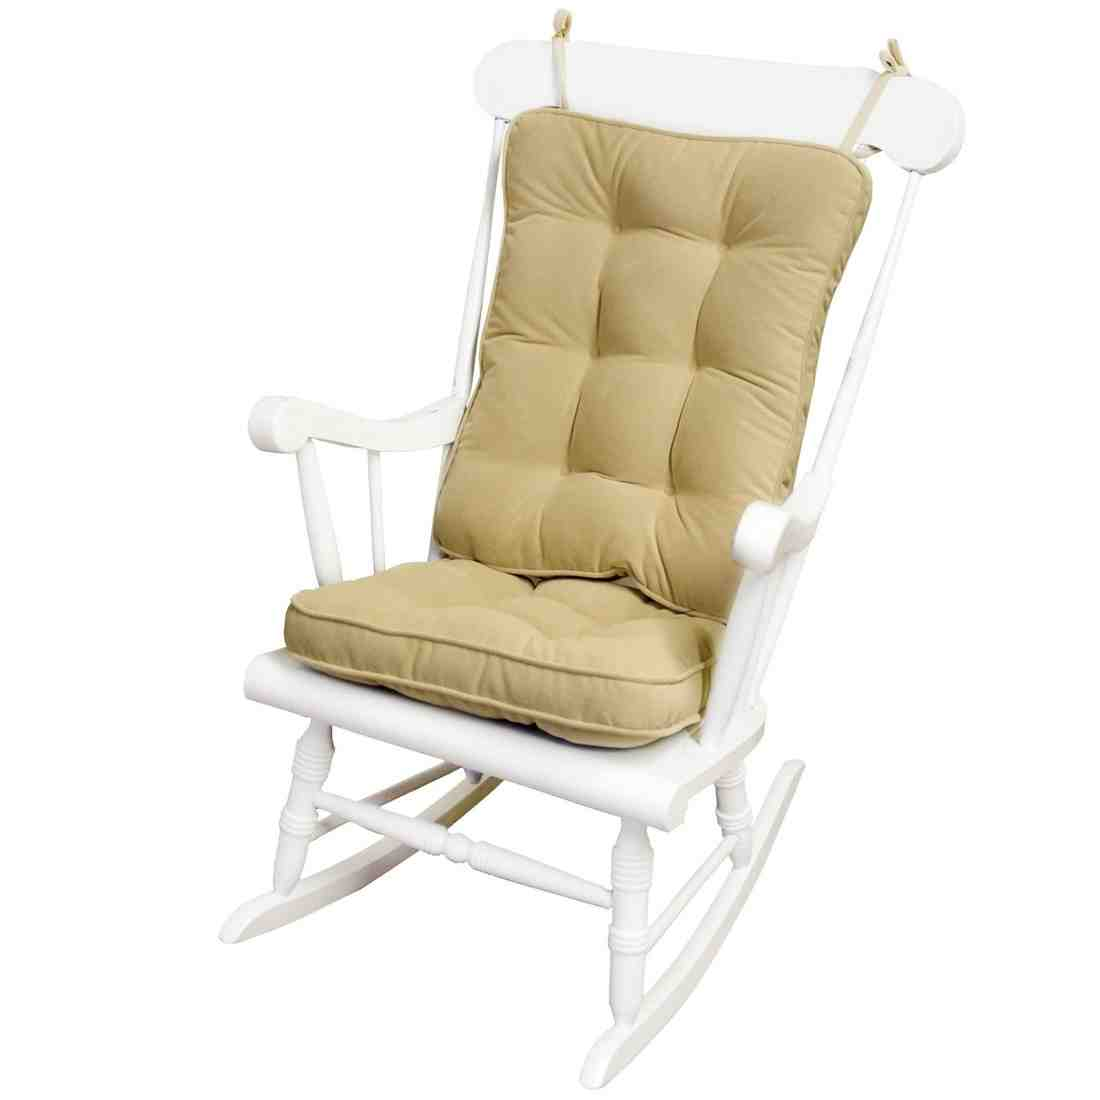 large rocking chair cushion sets ergonomic chairs for home replacement cushions glider